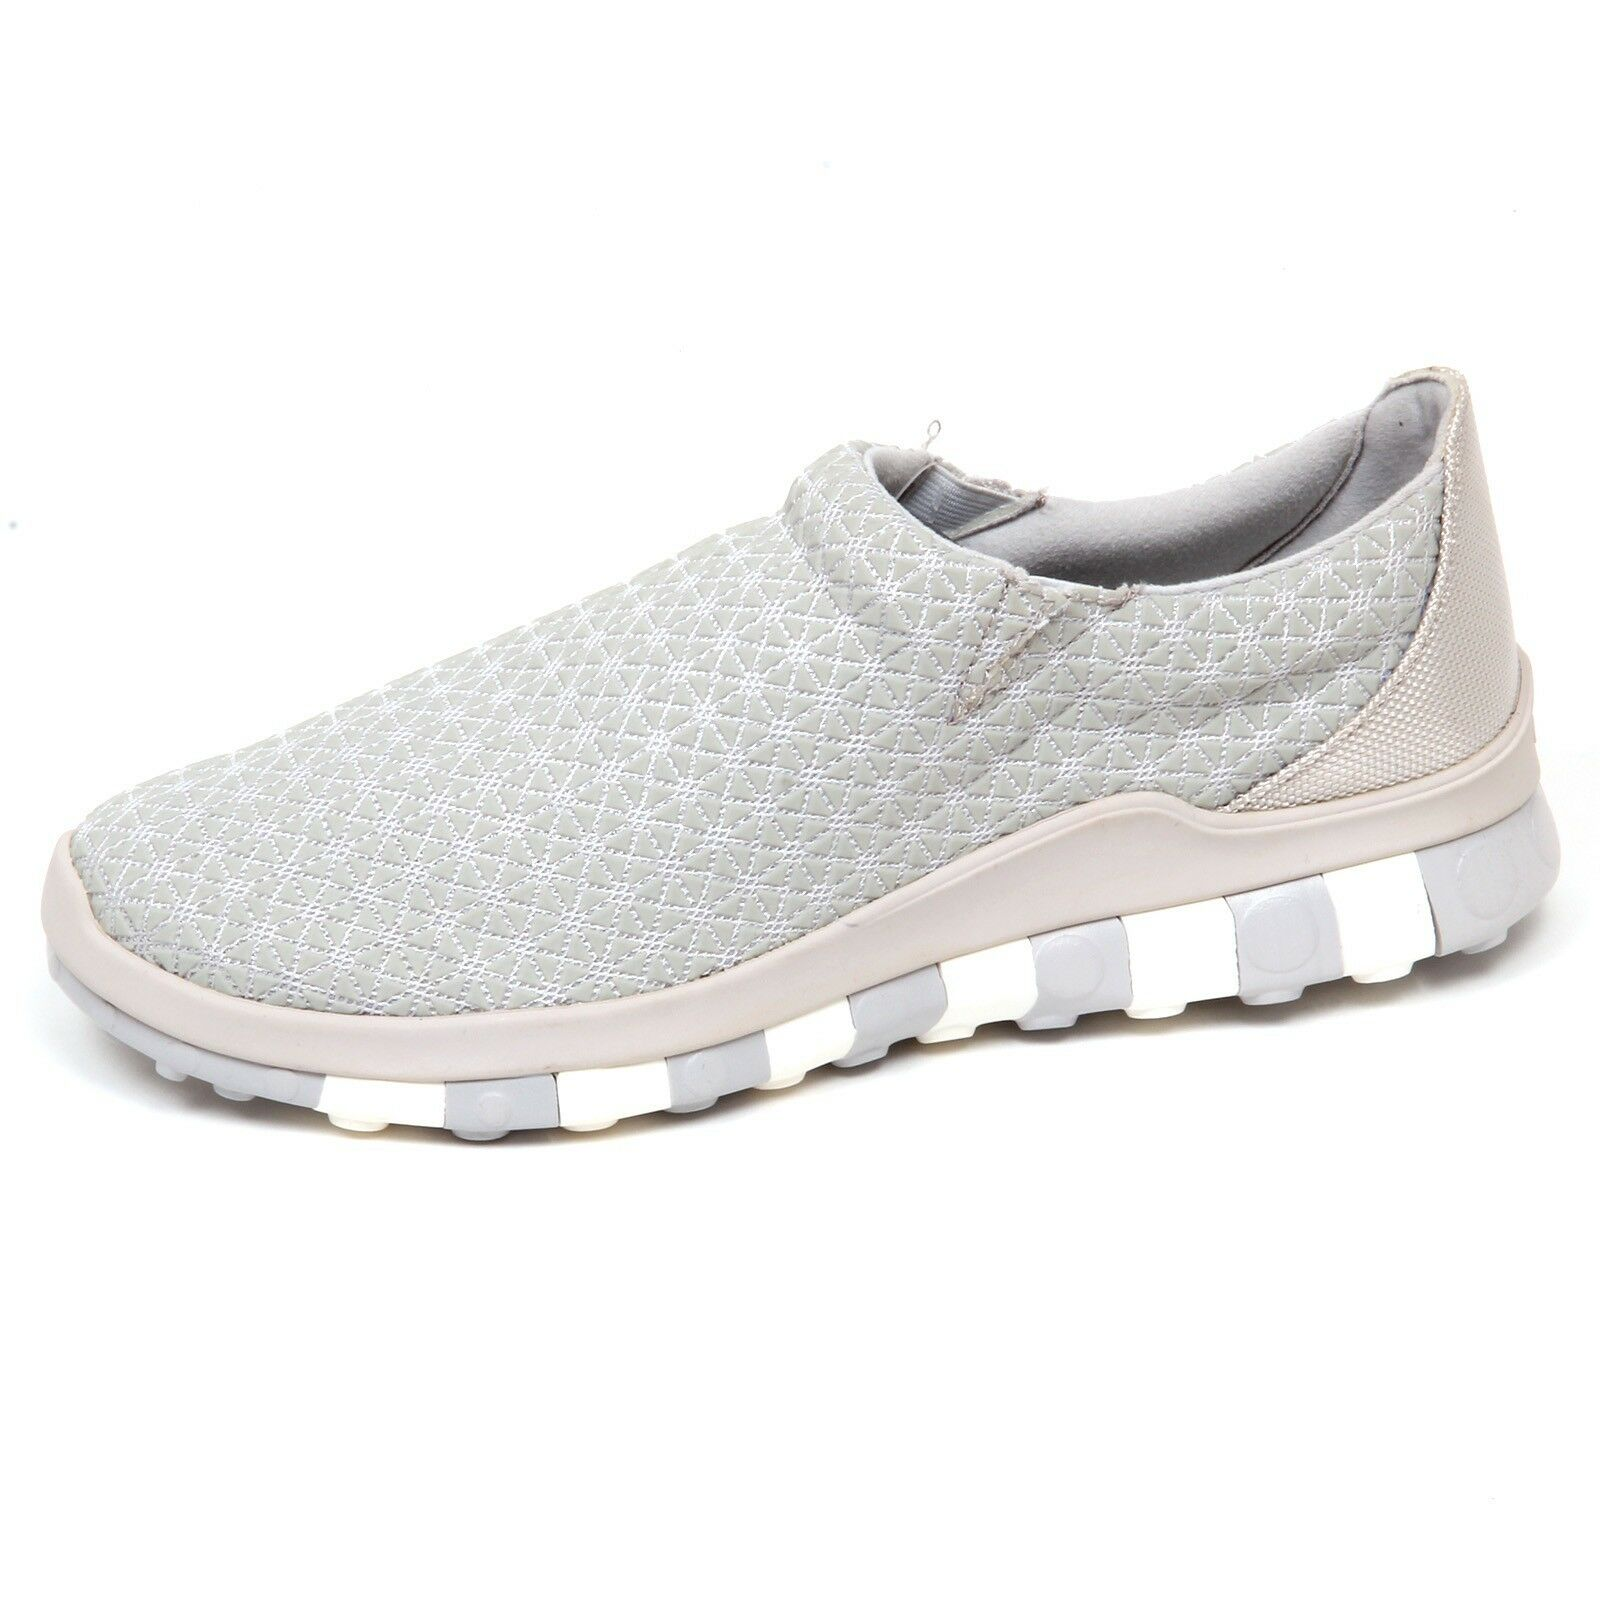 E8032 tissue/rubber (WITHOUT BOX) sneaker hombre tissue/rubber E8032 CCILU Gris slip on Zapatos man 8d9907